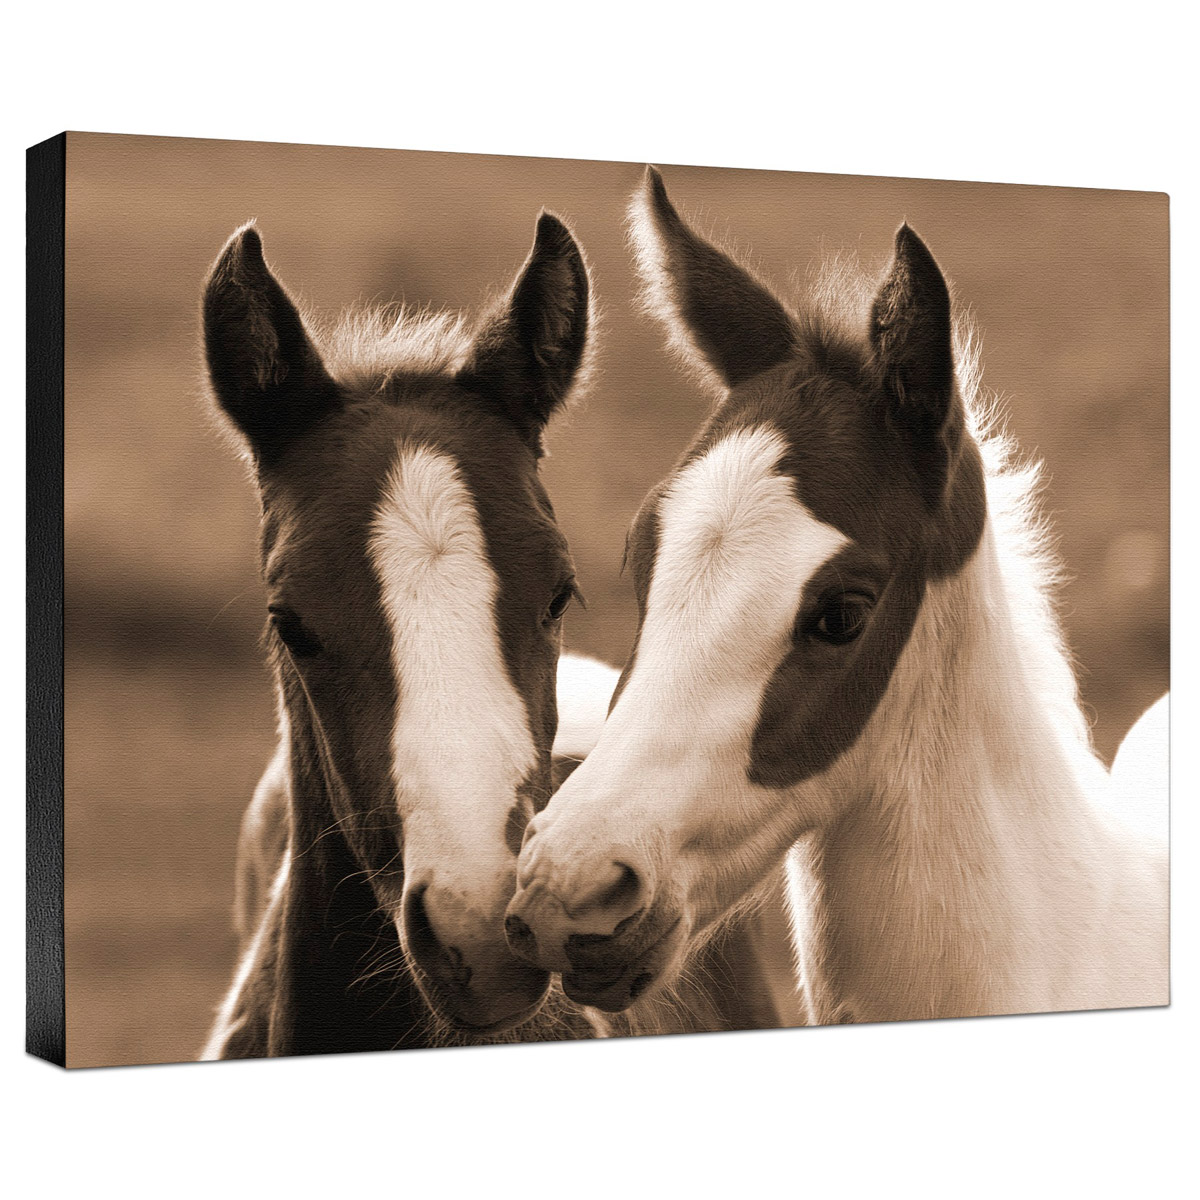 Playful Friends Gallery Wrapped Canvas